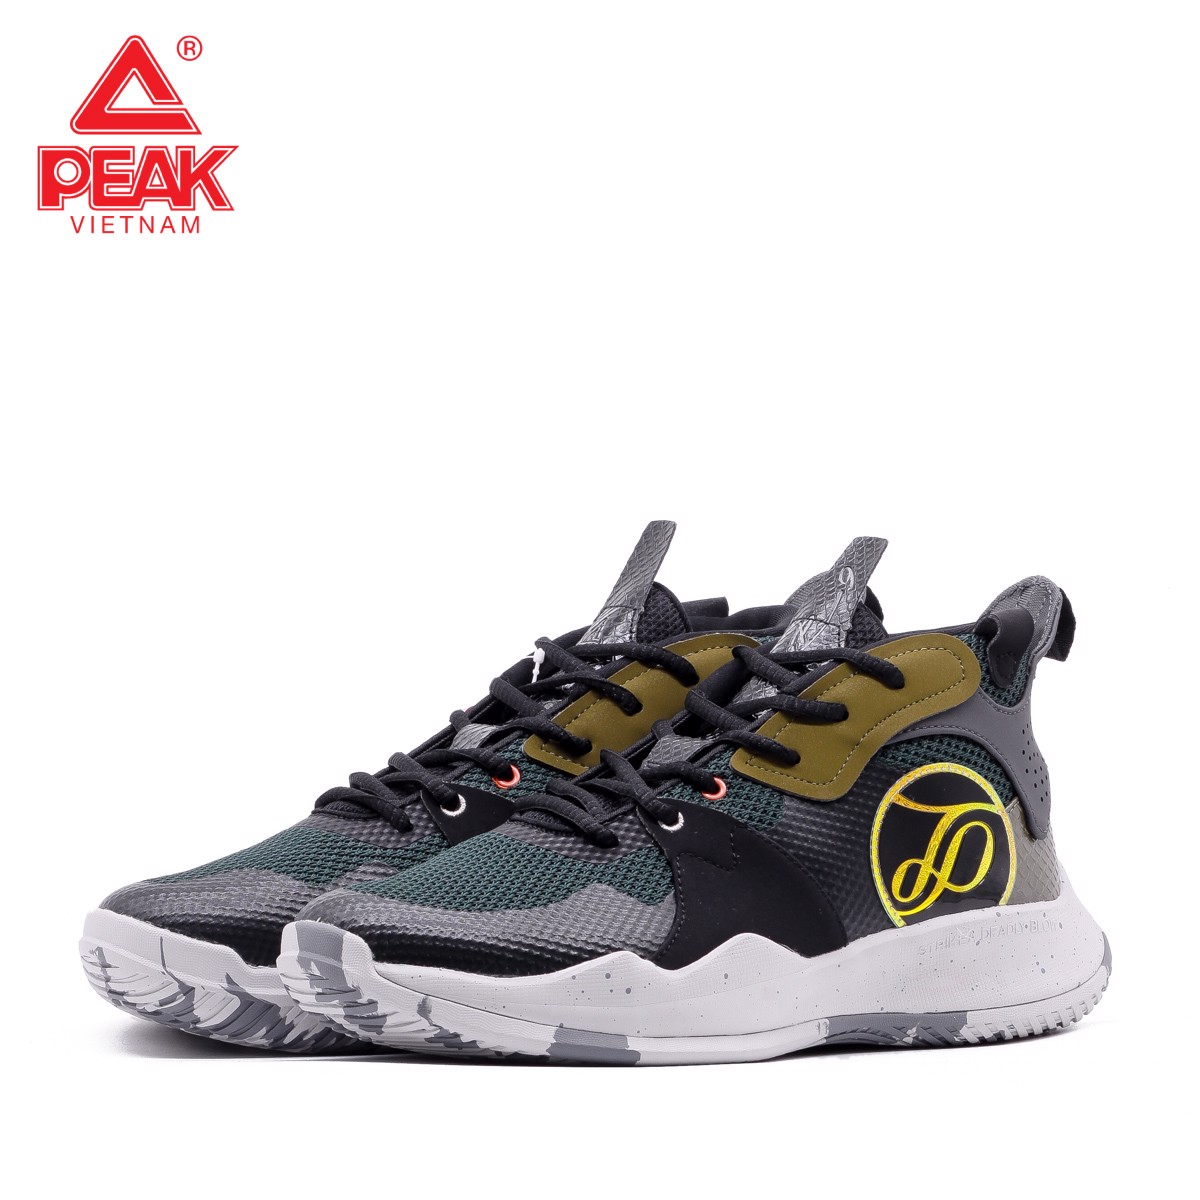 Peak Tony Parker Green Black